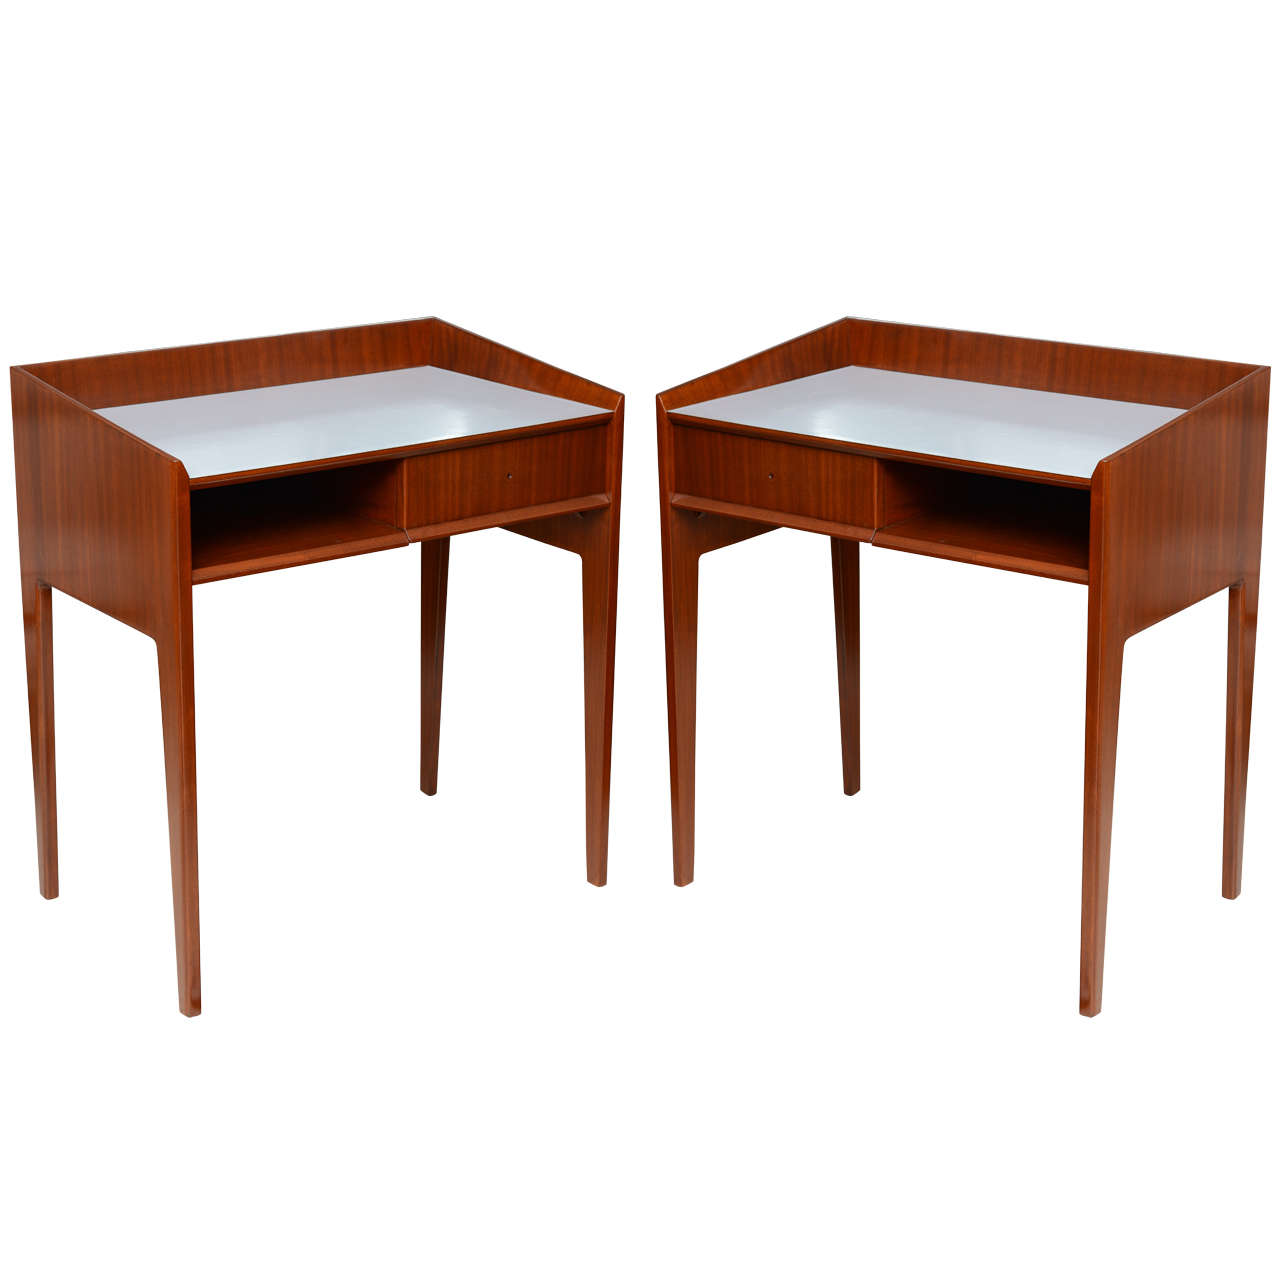 Rare Pair of Mahogany and Formica Side Tables in Style of Gio Ponti, Italy 1950s